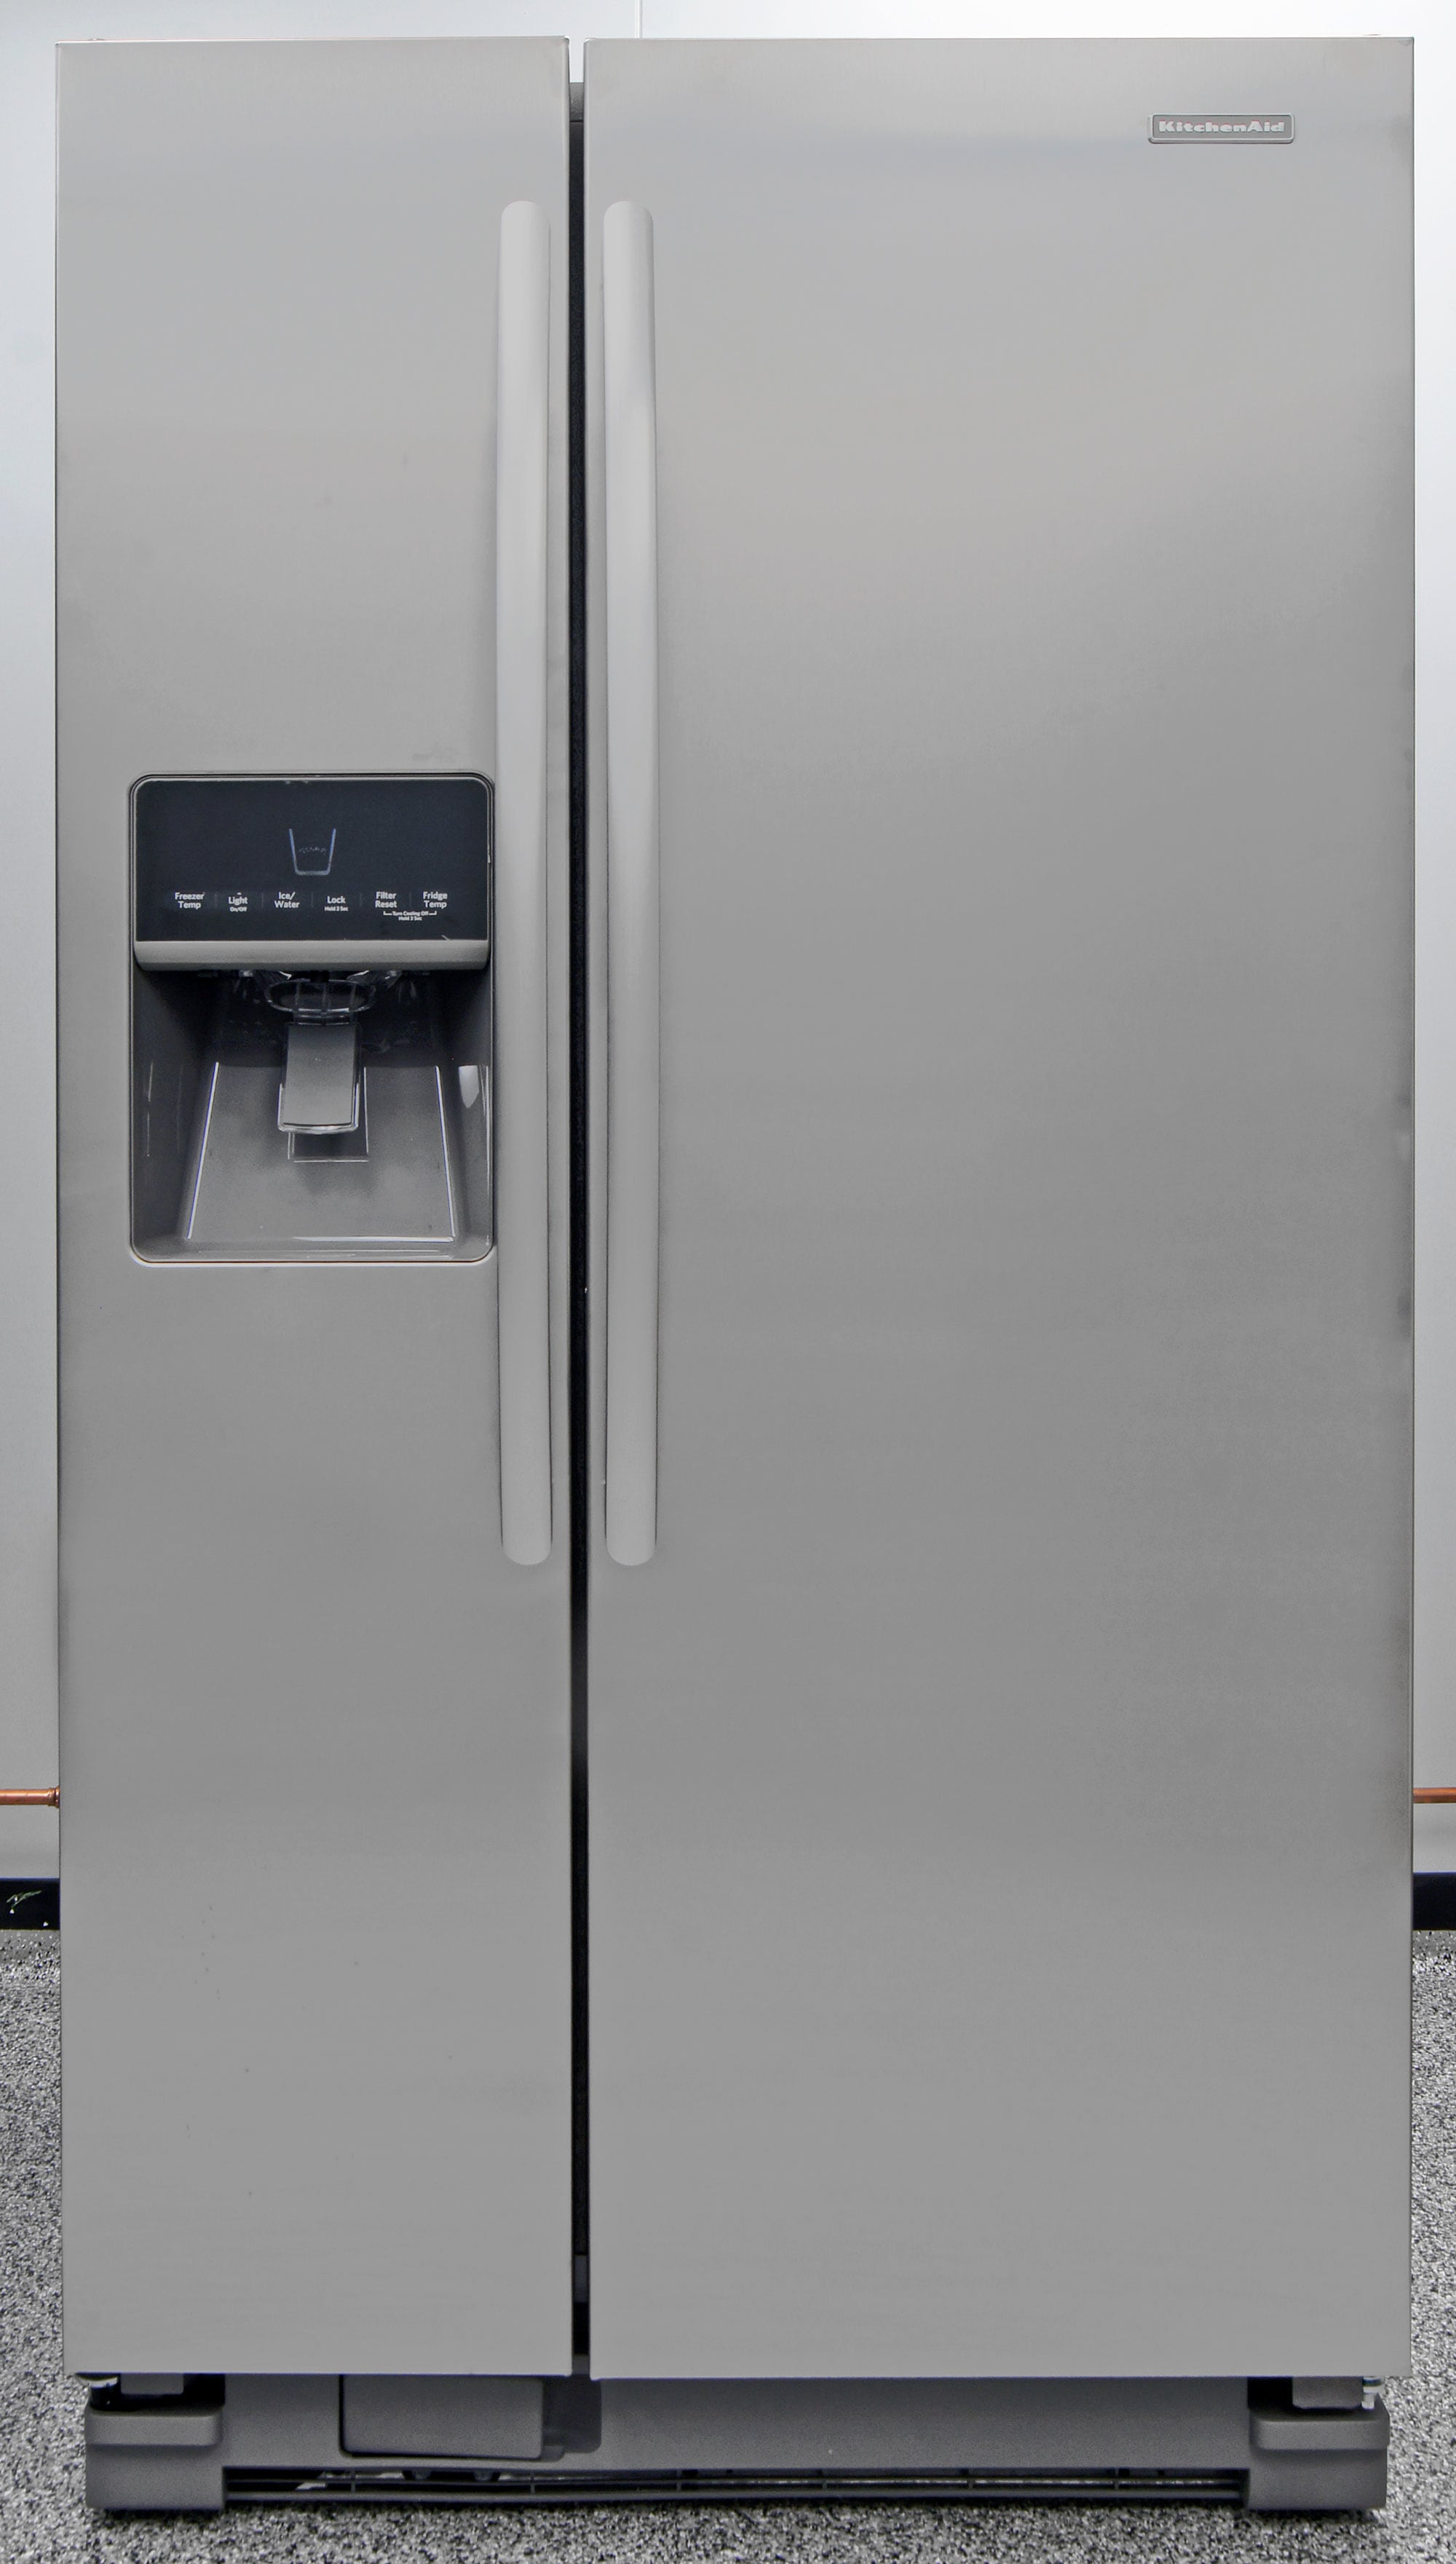 The KitchenAid KSF22C4CYY has the design and layout of a stainless side-by-side with the height of a standard top freezer combined all in one machine.